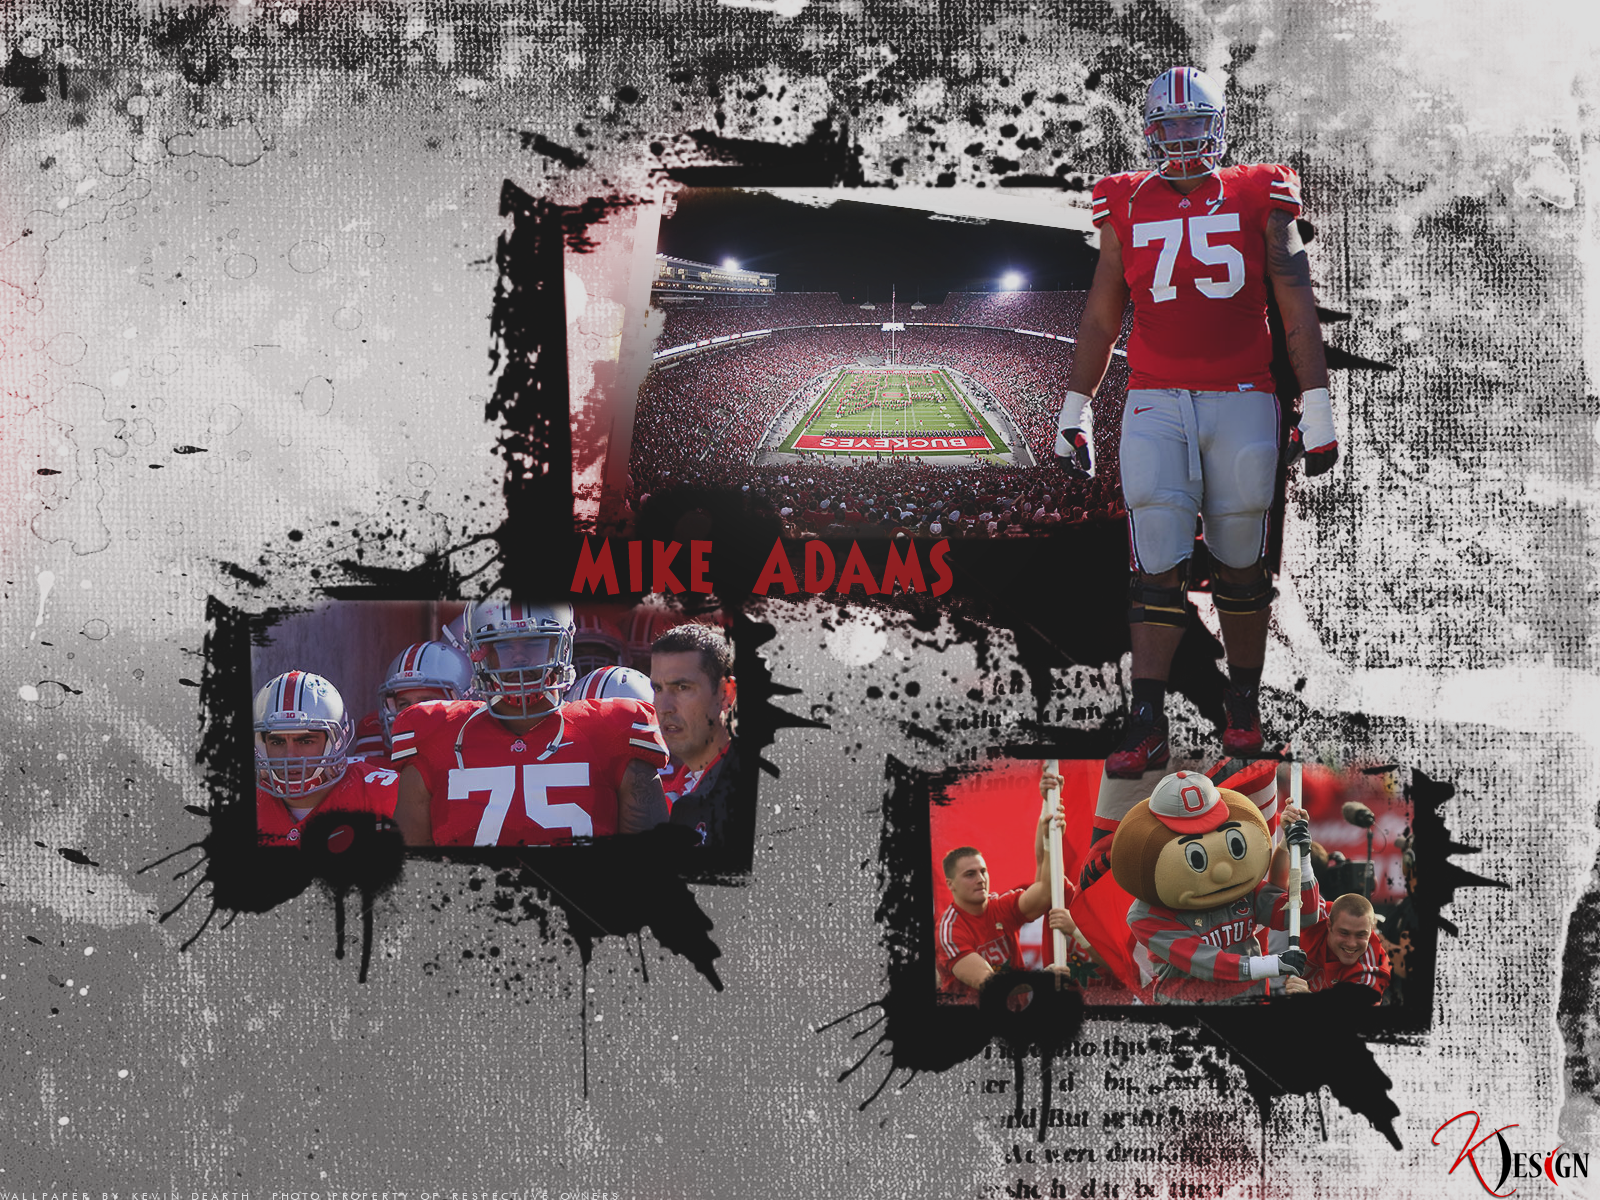 Mike Adams Wallpaper by KevinsGraphics